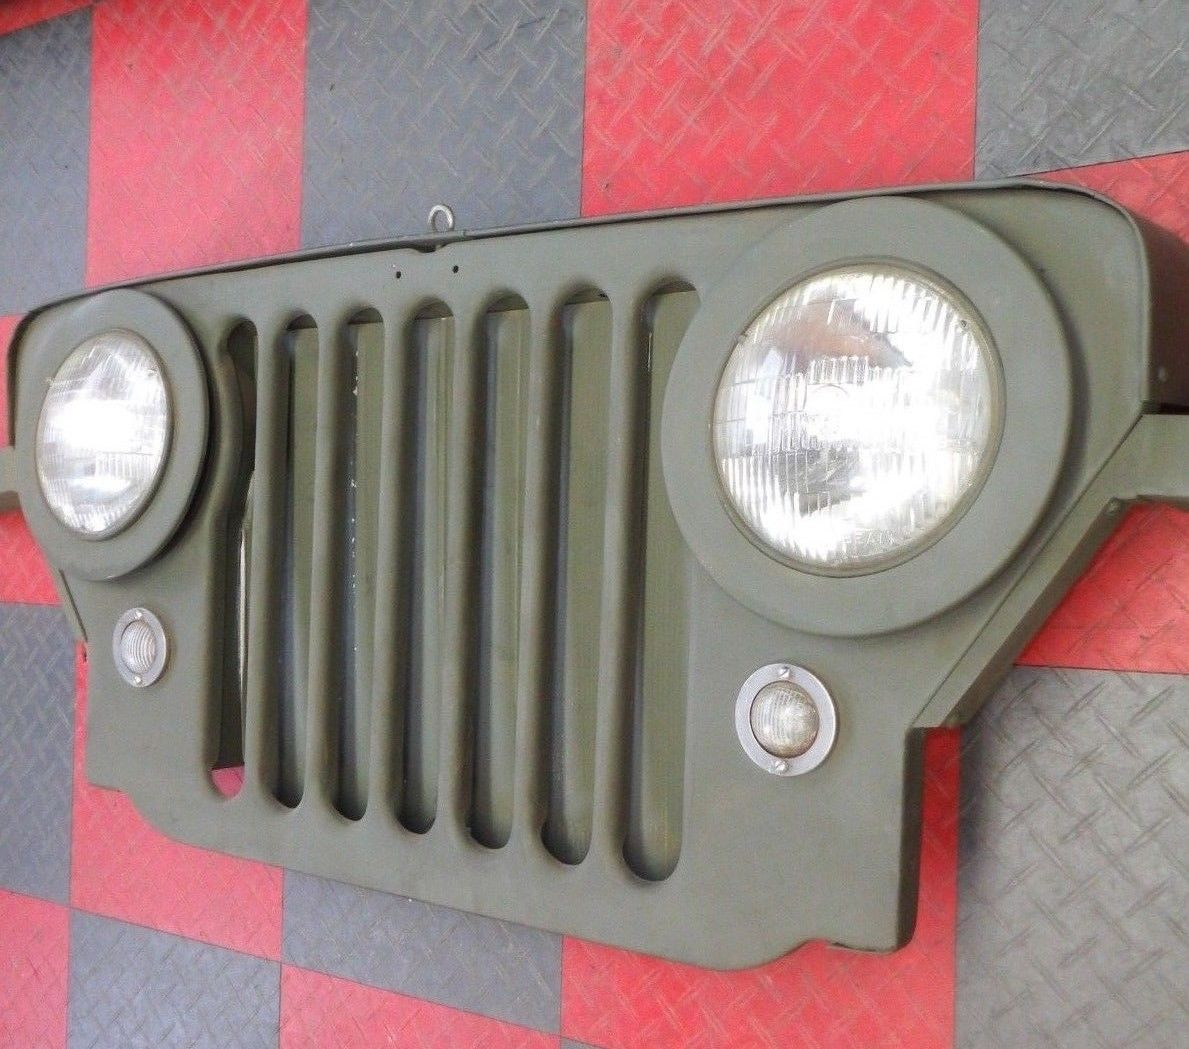 WILLYS JEEP M-38 CJ-3 CJ-2 WALL HANGER SIGN GRILL GRILLE FRONT CLIP MILITARY M38 Image